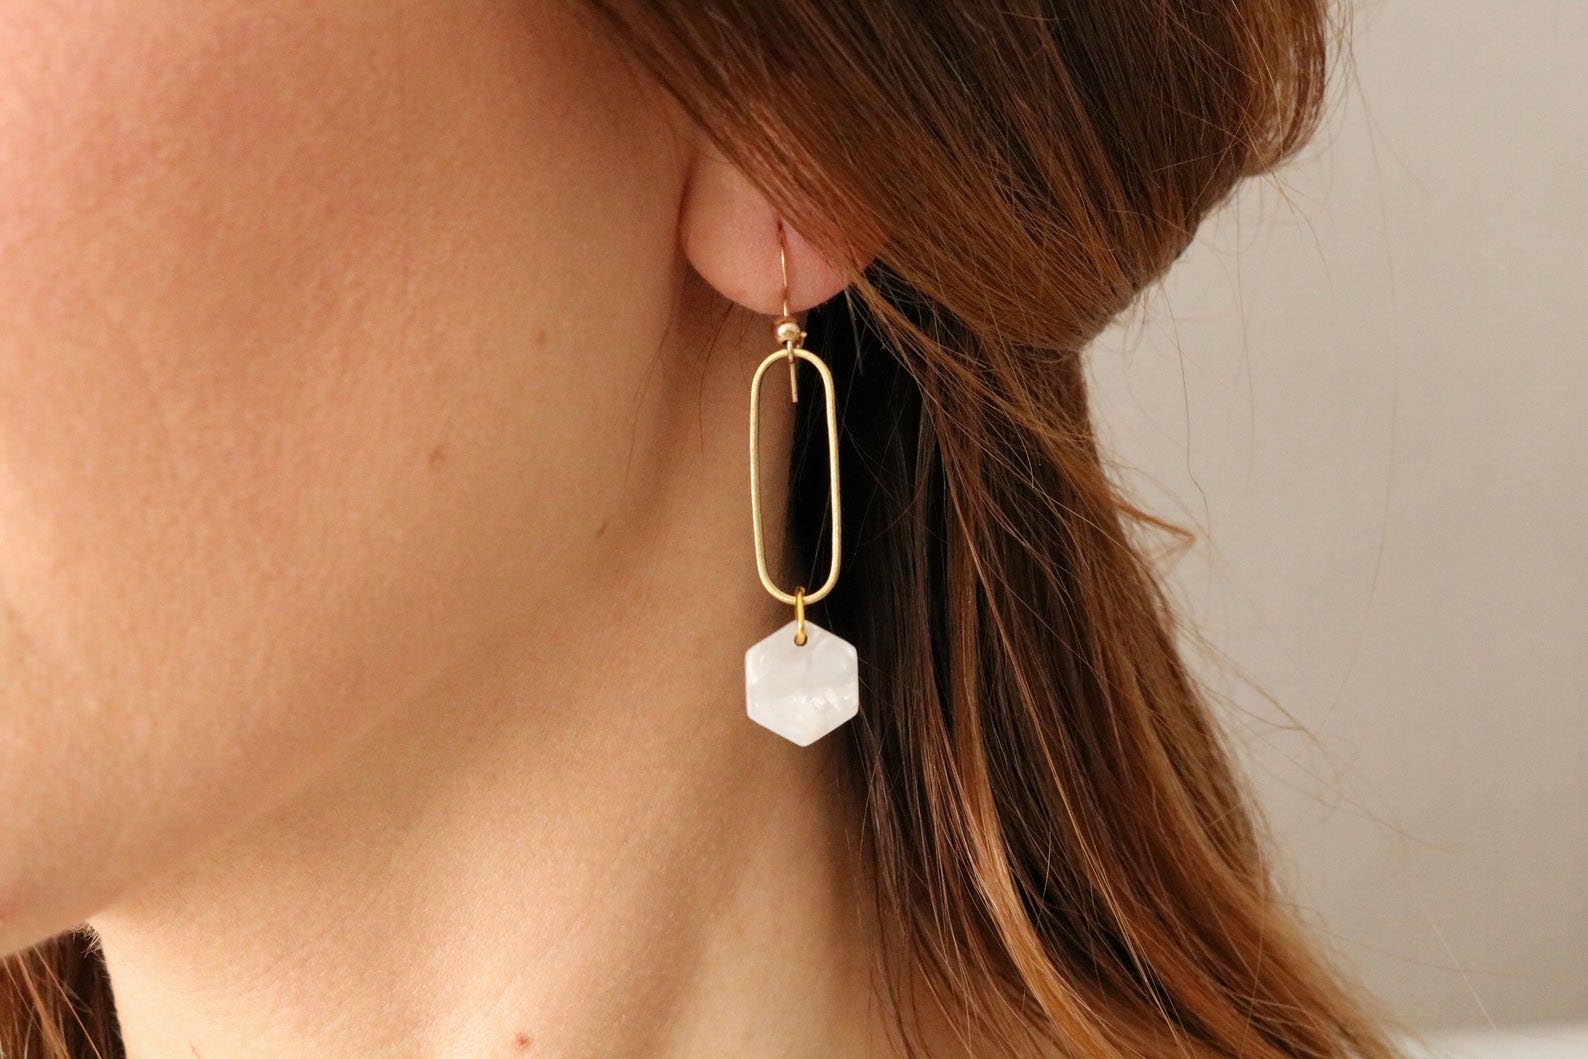 Gift Idea - Modern Earrings